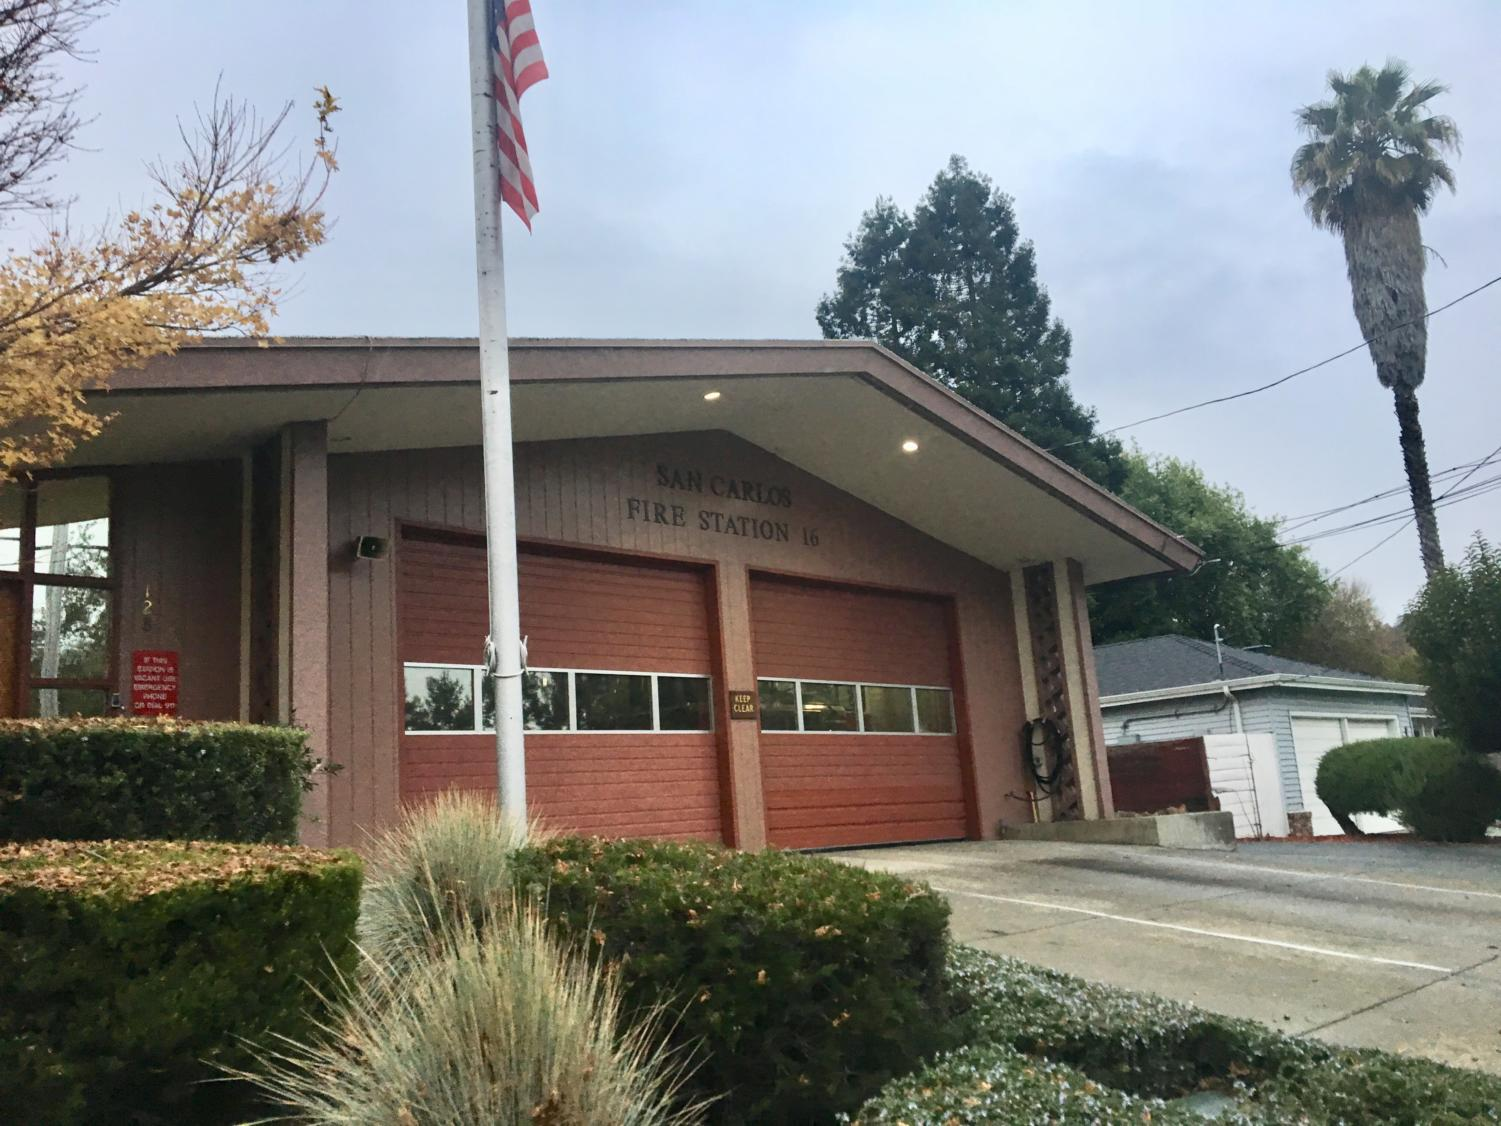 Station 16 in San Carlos is one of the three fire stations that respond to accidents in the area.